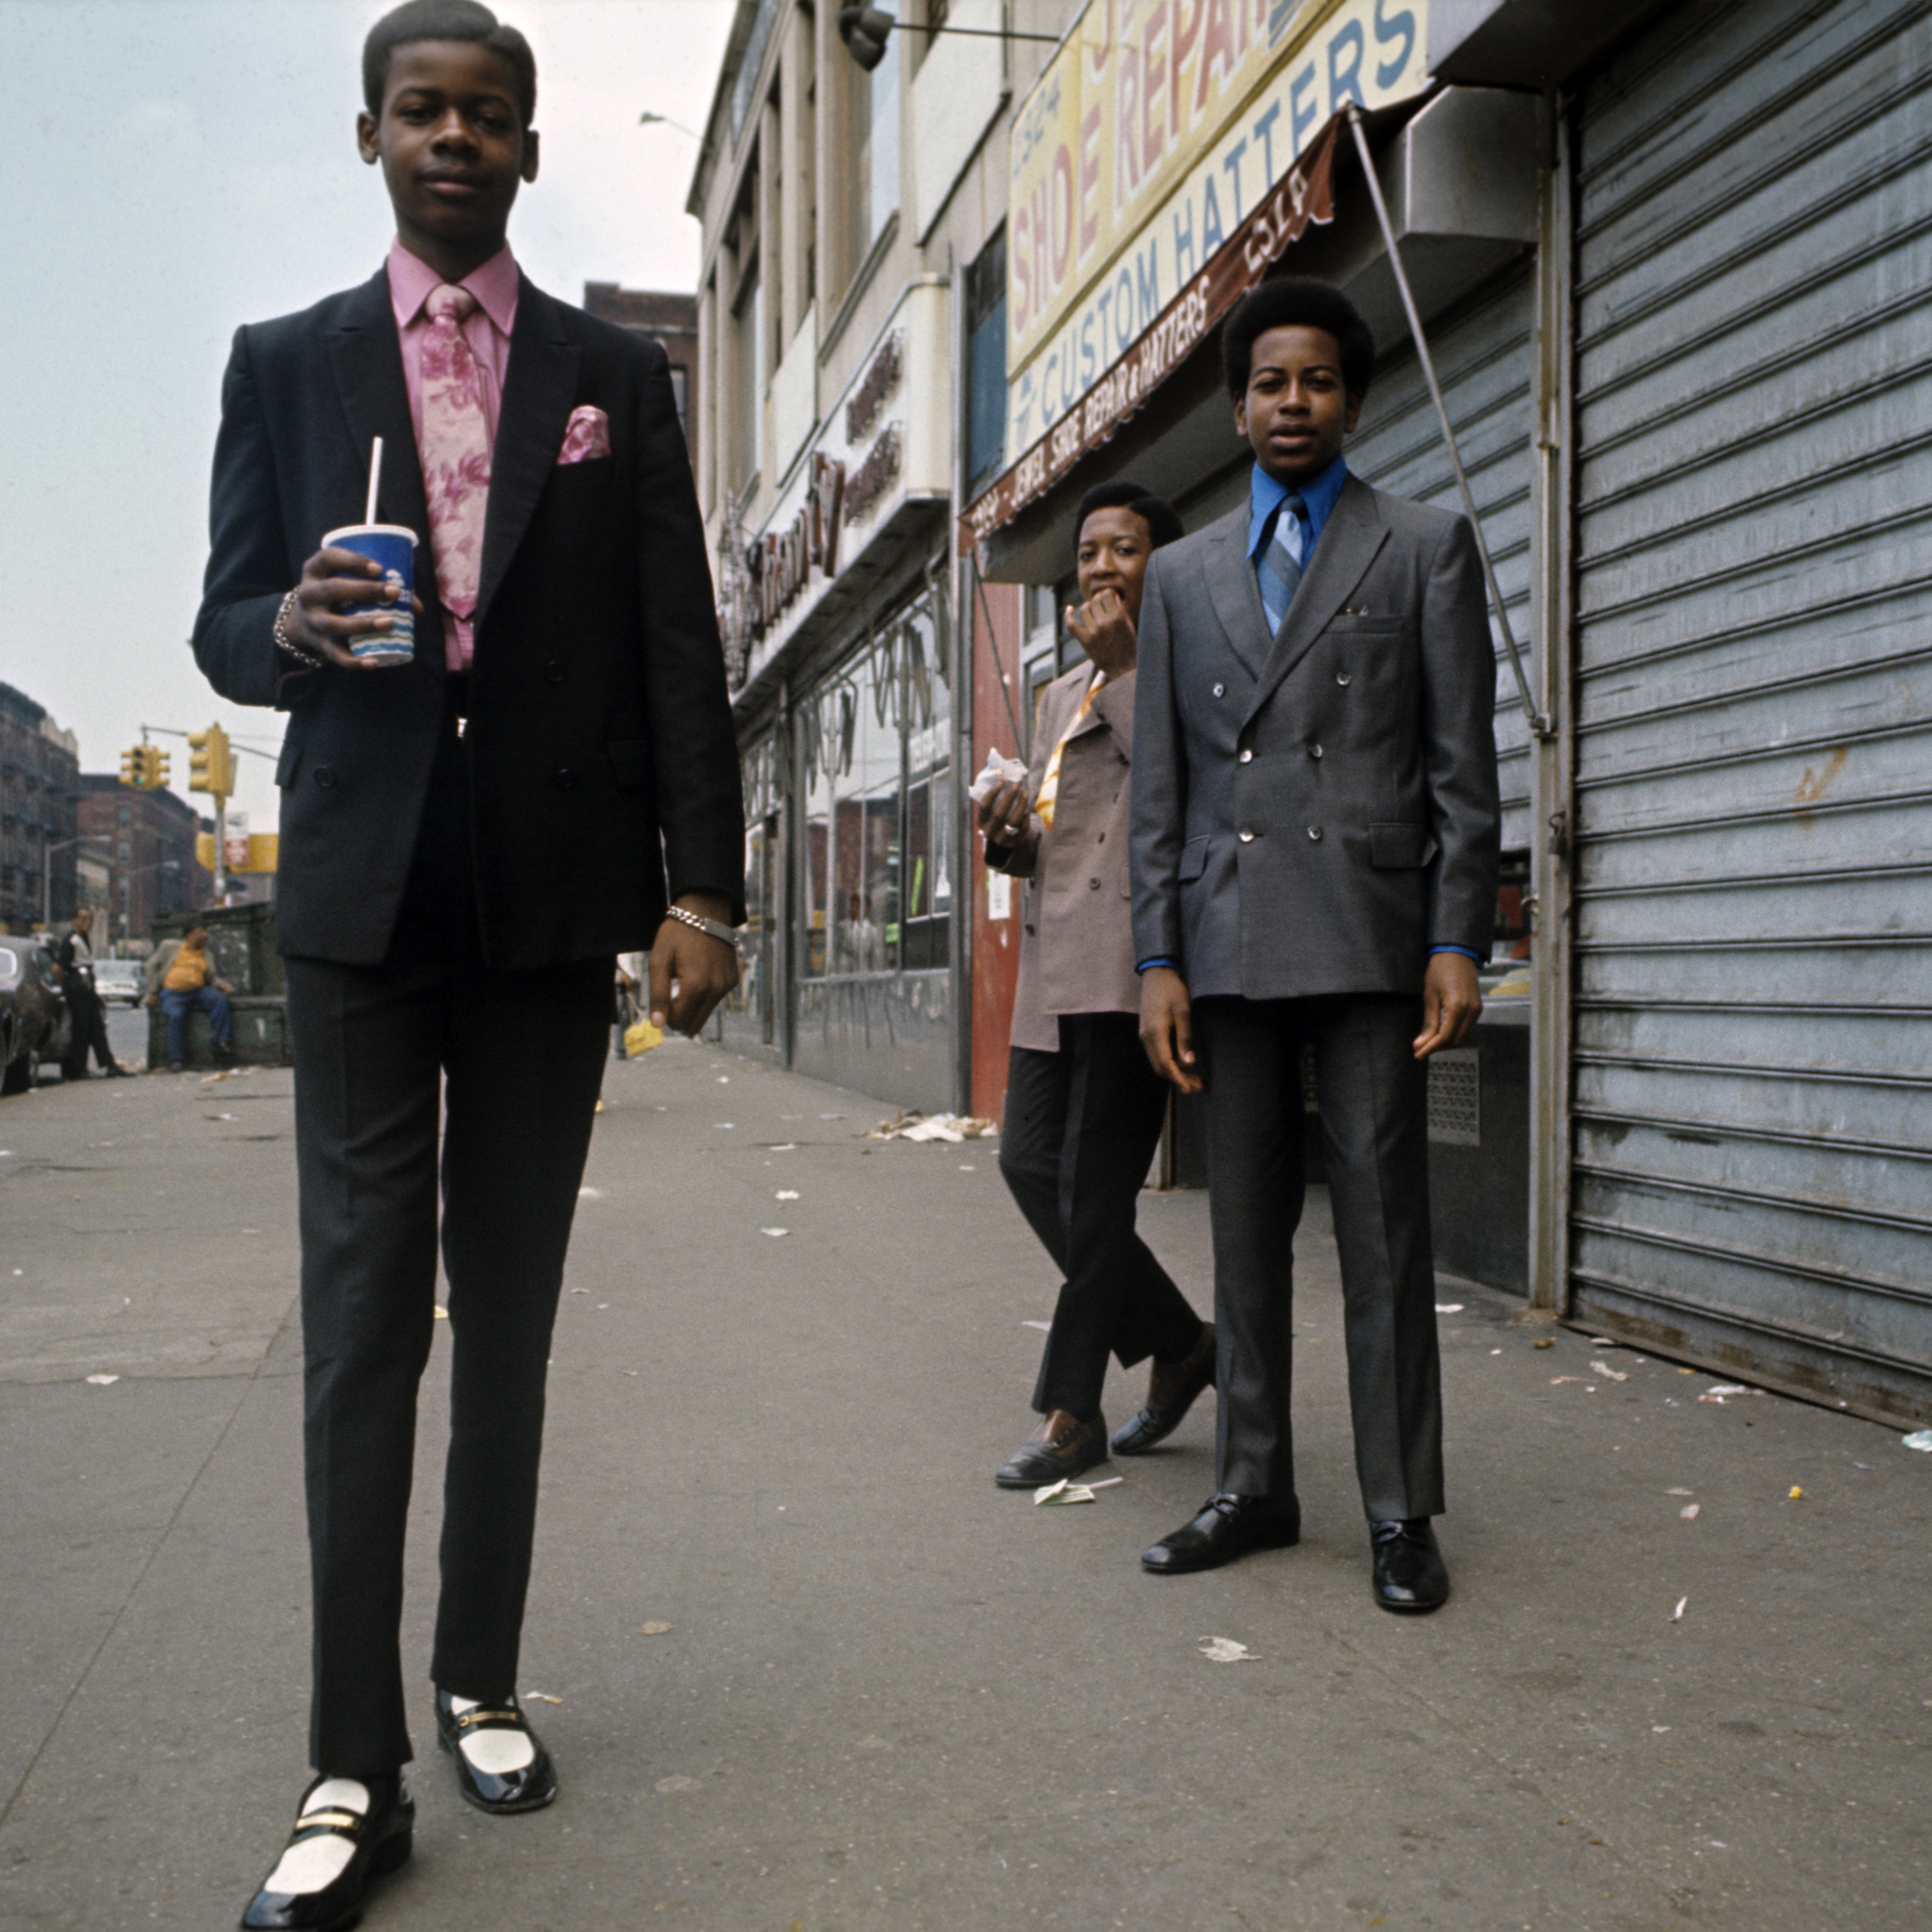 a teen boy dressed in a suit on a street the boys behind him